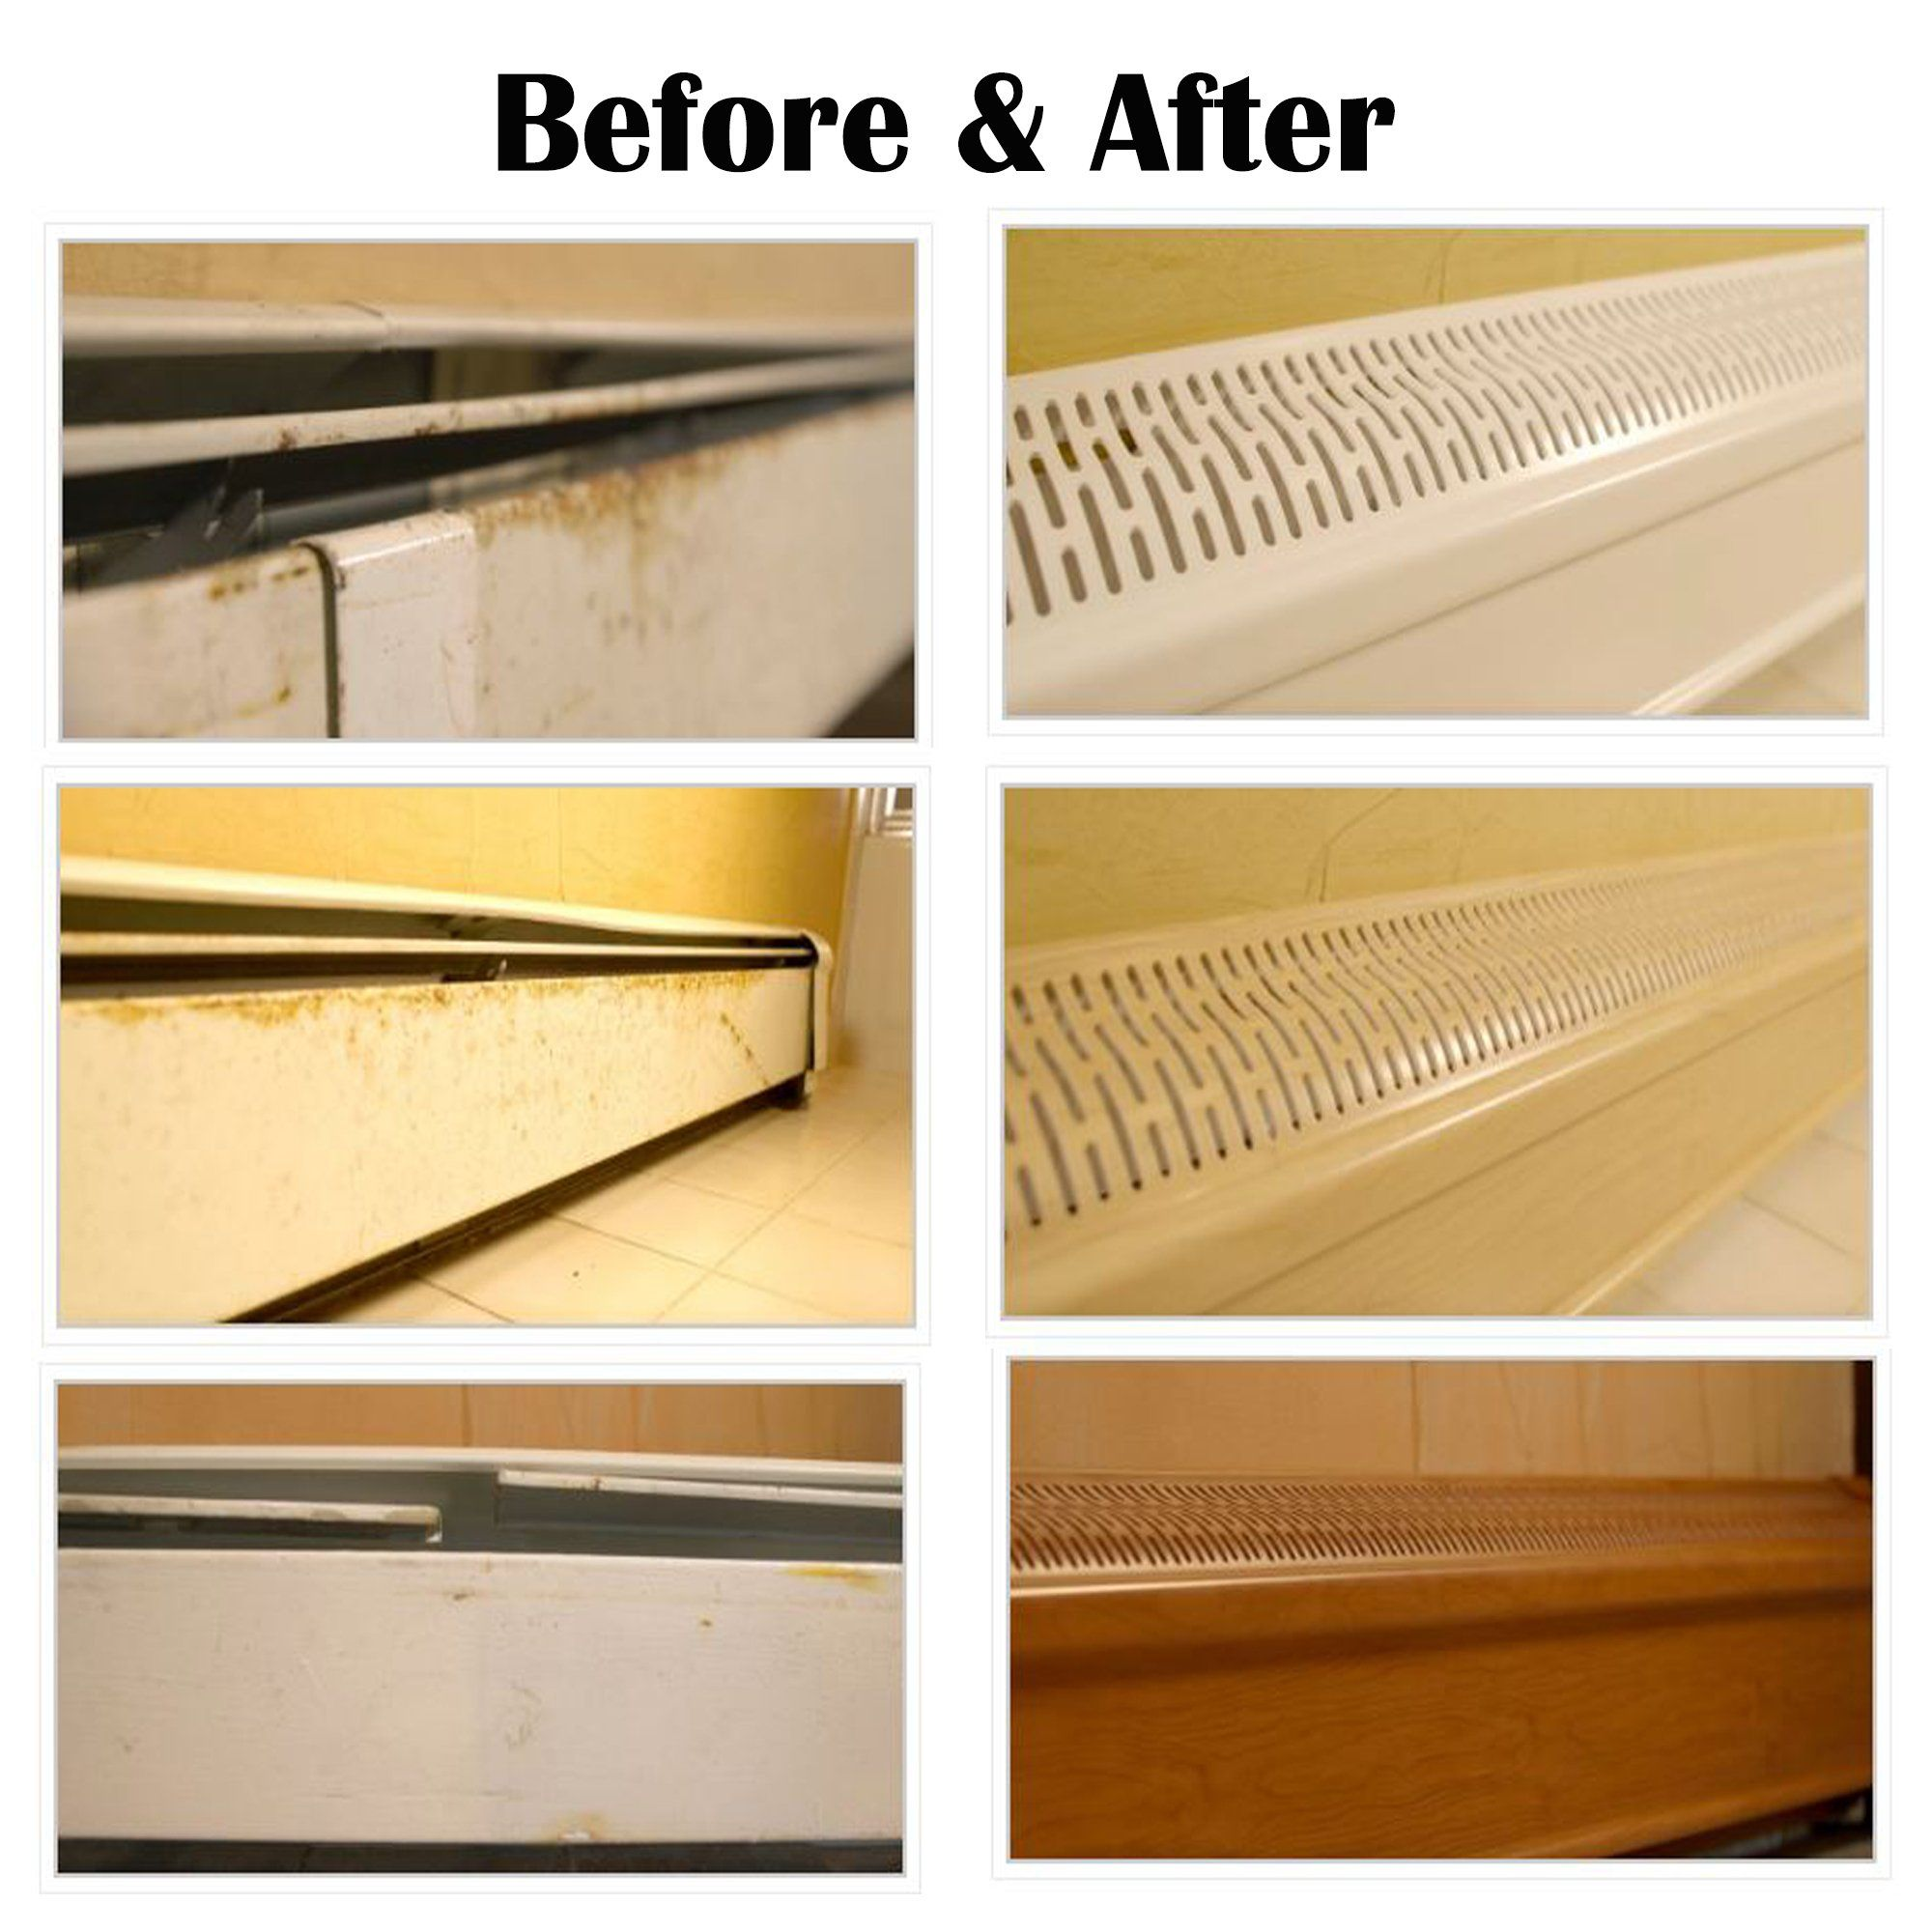 Baseboard Heater Cover Complete Set Includes Right And Left End Caps Hot Water Hydronic Heater Slant Baseboard Heating Baseboard Heater Covers Baseboard Heater